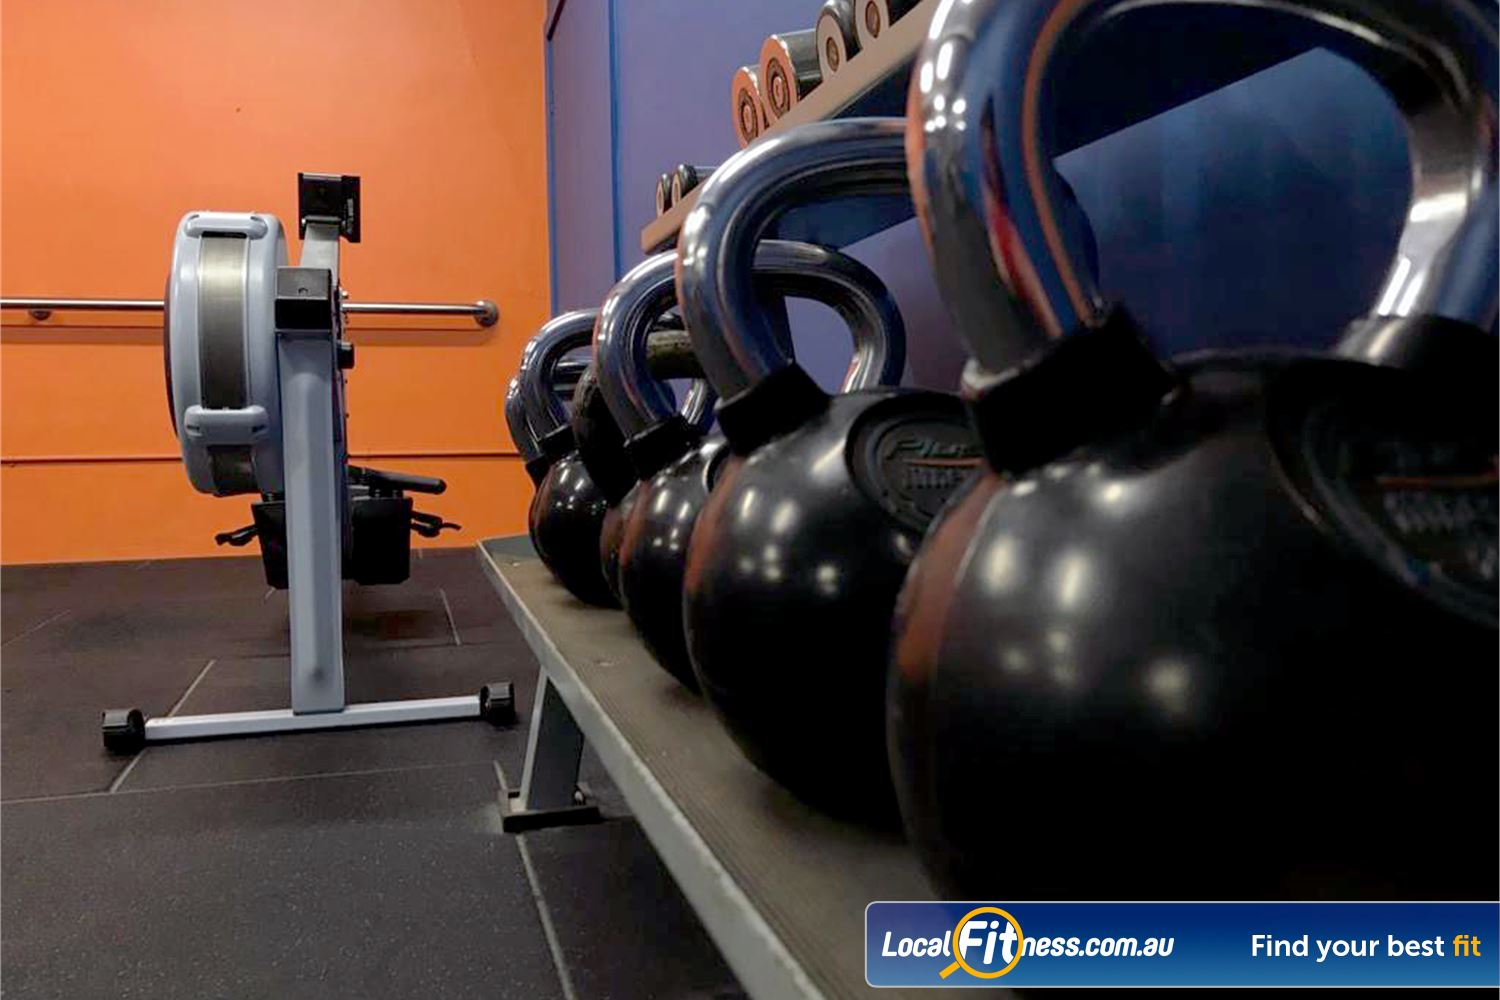 Plus Fitness Health Clubs Near Winston Hills Get into functional training with kettlebells and indoor rowing.